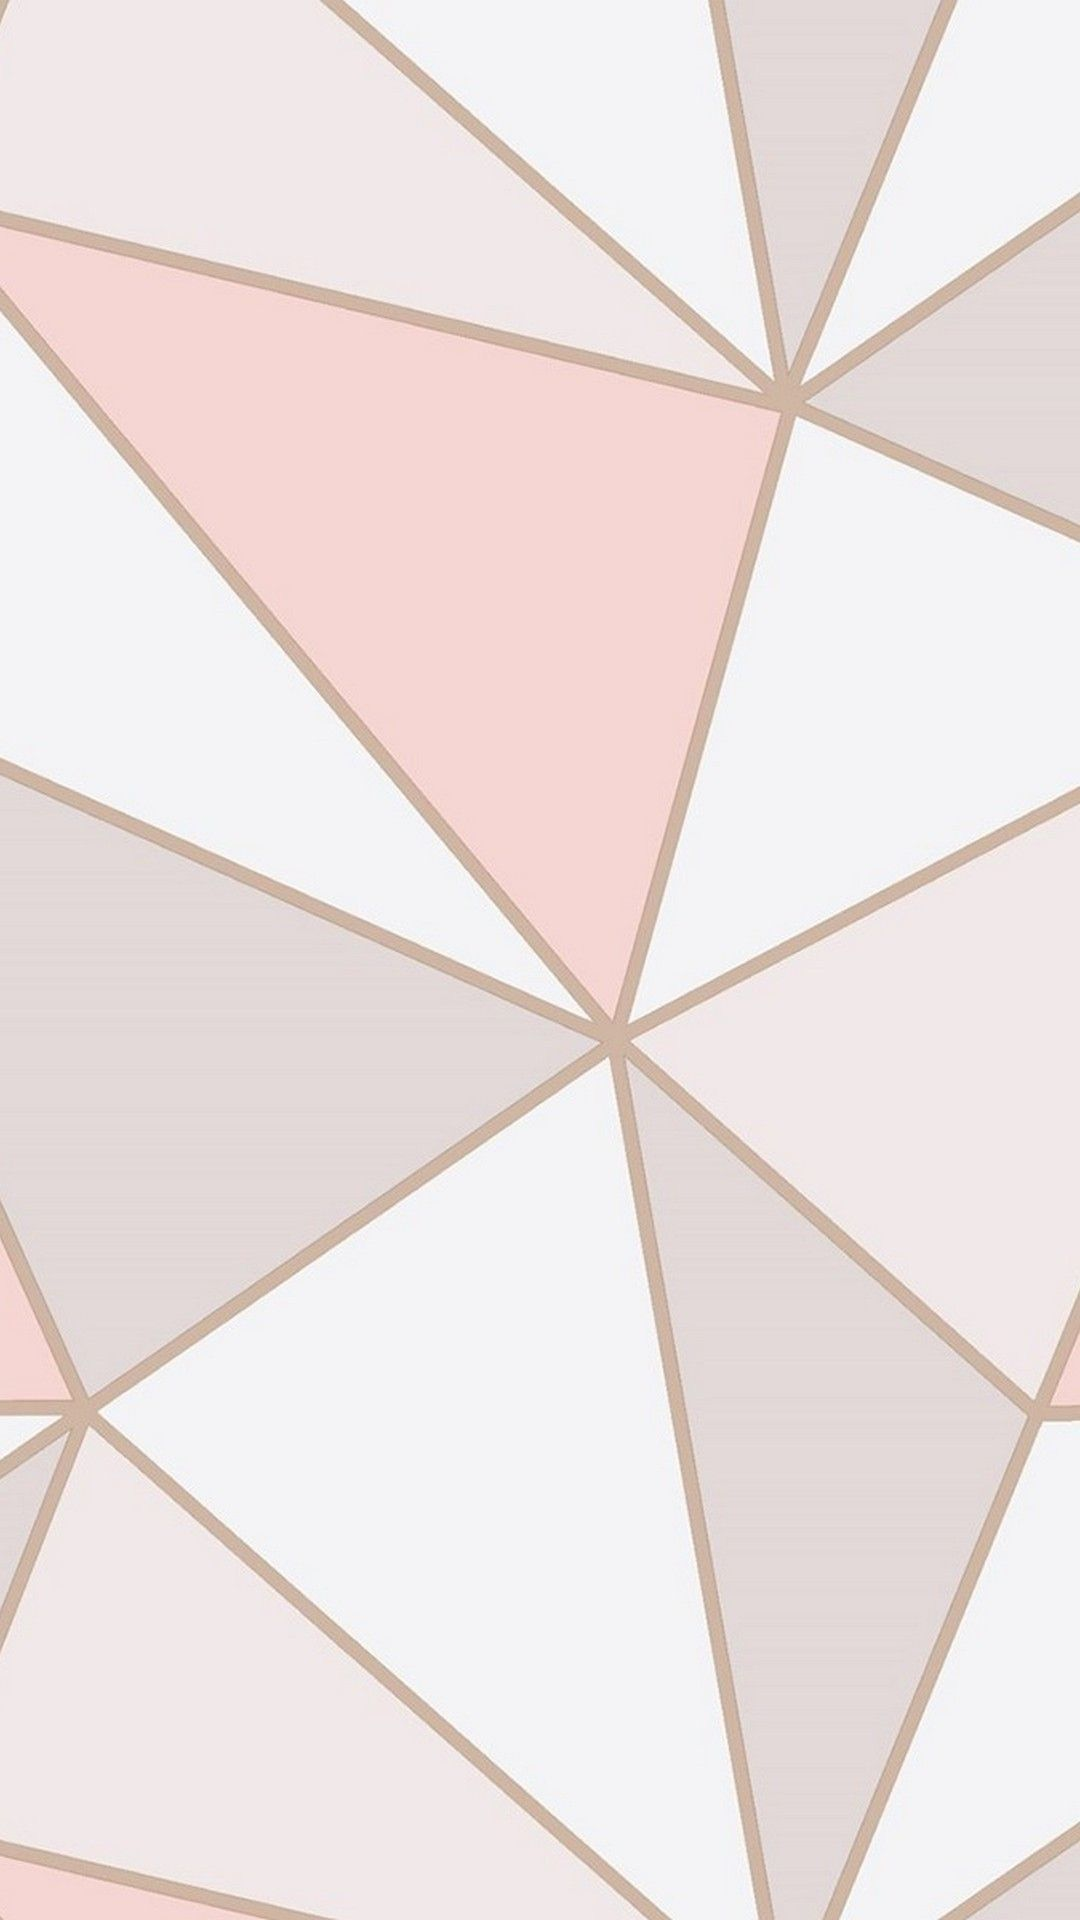 Cute Rose Gold iPhone Wallpapers on WallpaperDog